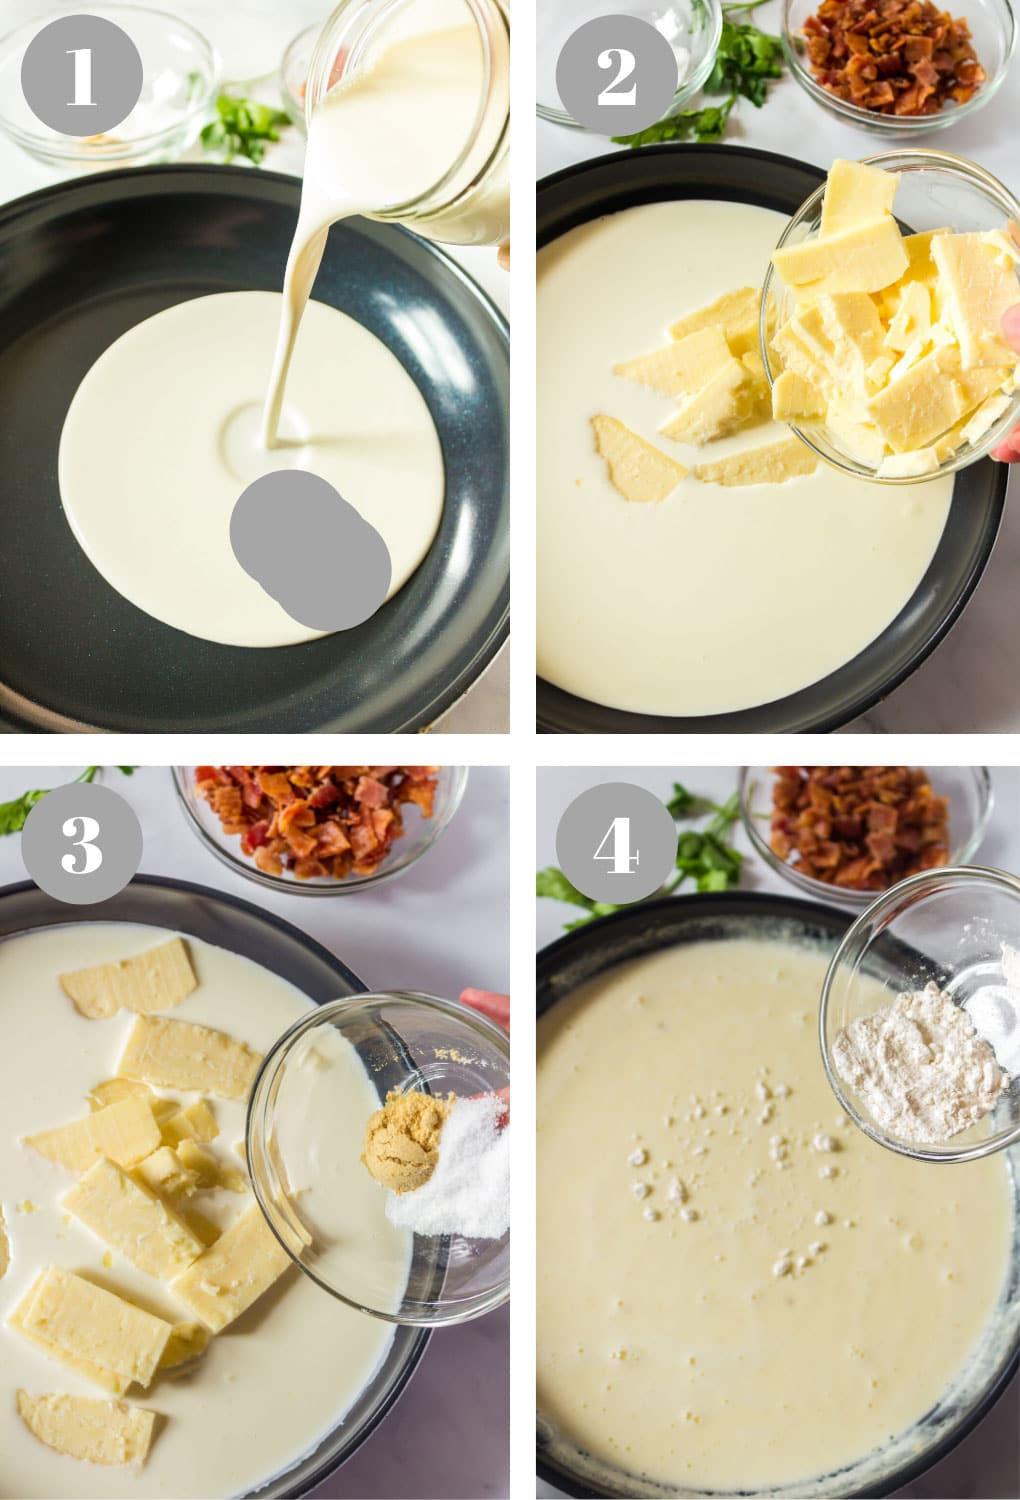 Process steps to making a roux, or a sauce, for macaroni and cheese.